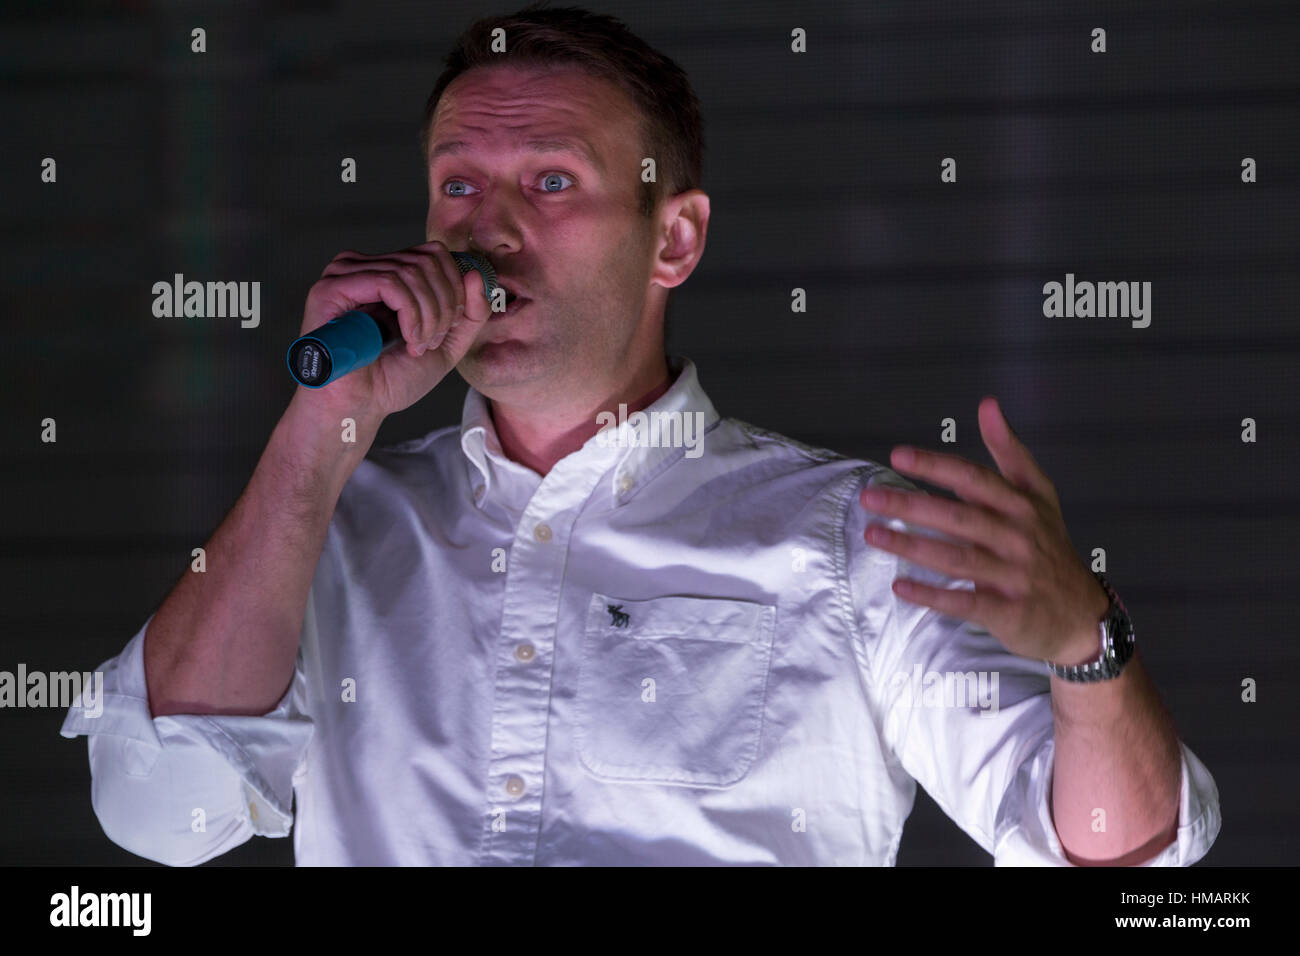 Russian opposition activists Alexei Navalny addressed speaking from a stage in front of the protesters at a rally Stock Photo